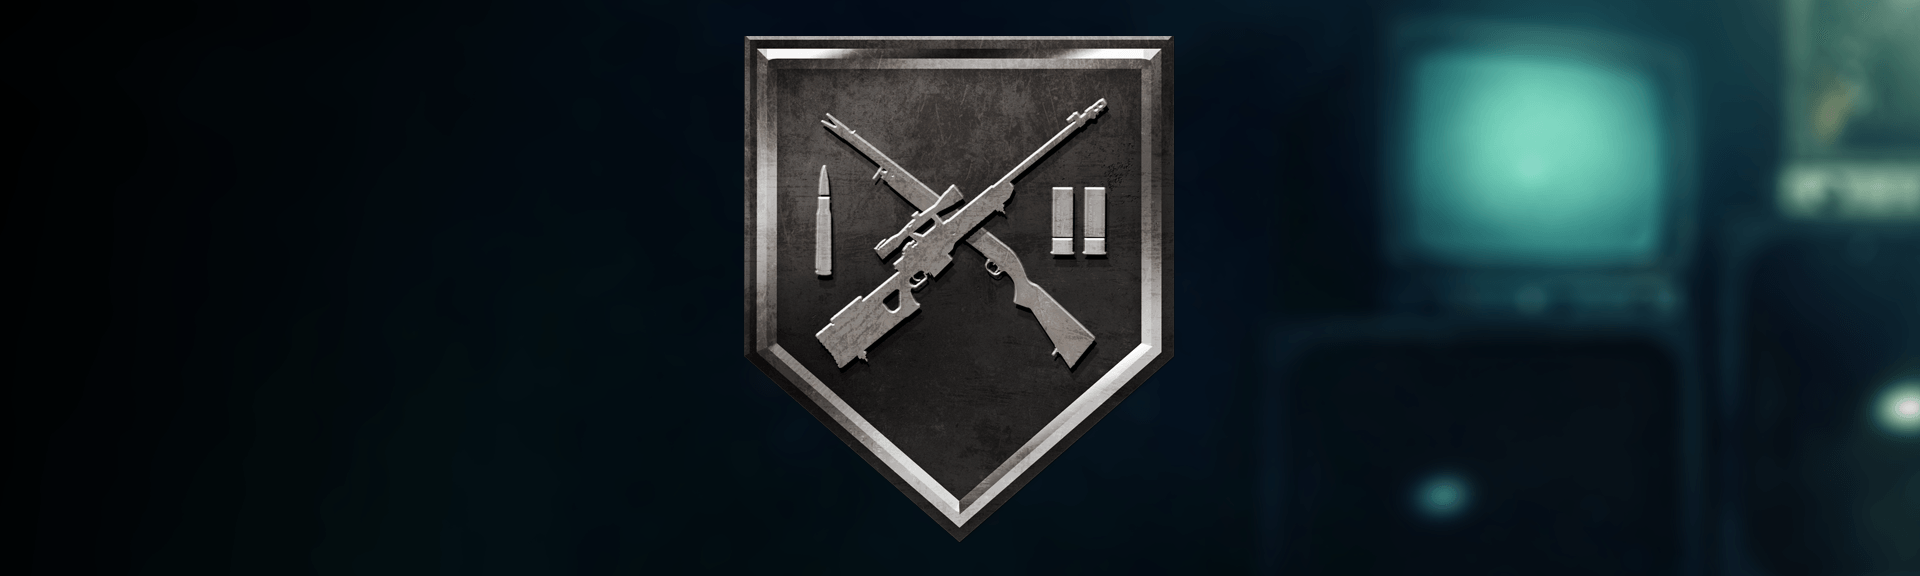 Scopes and Scatterguns mode icon